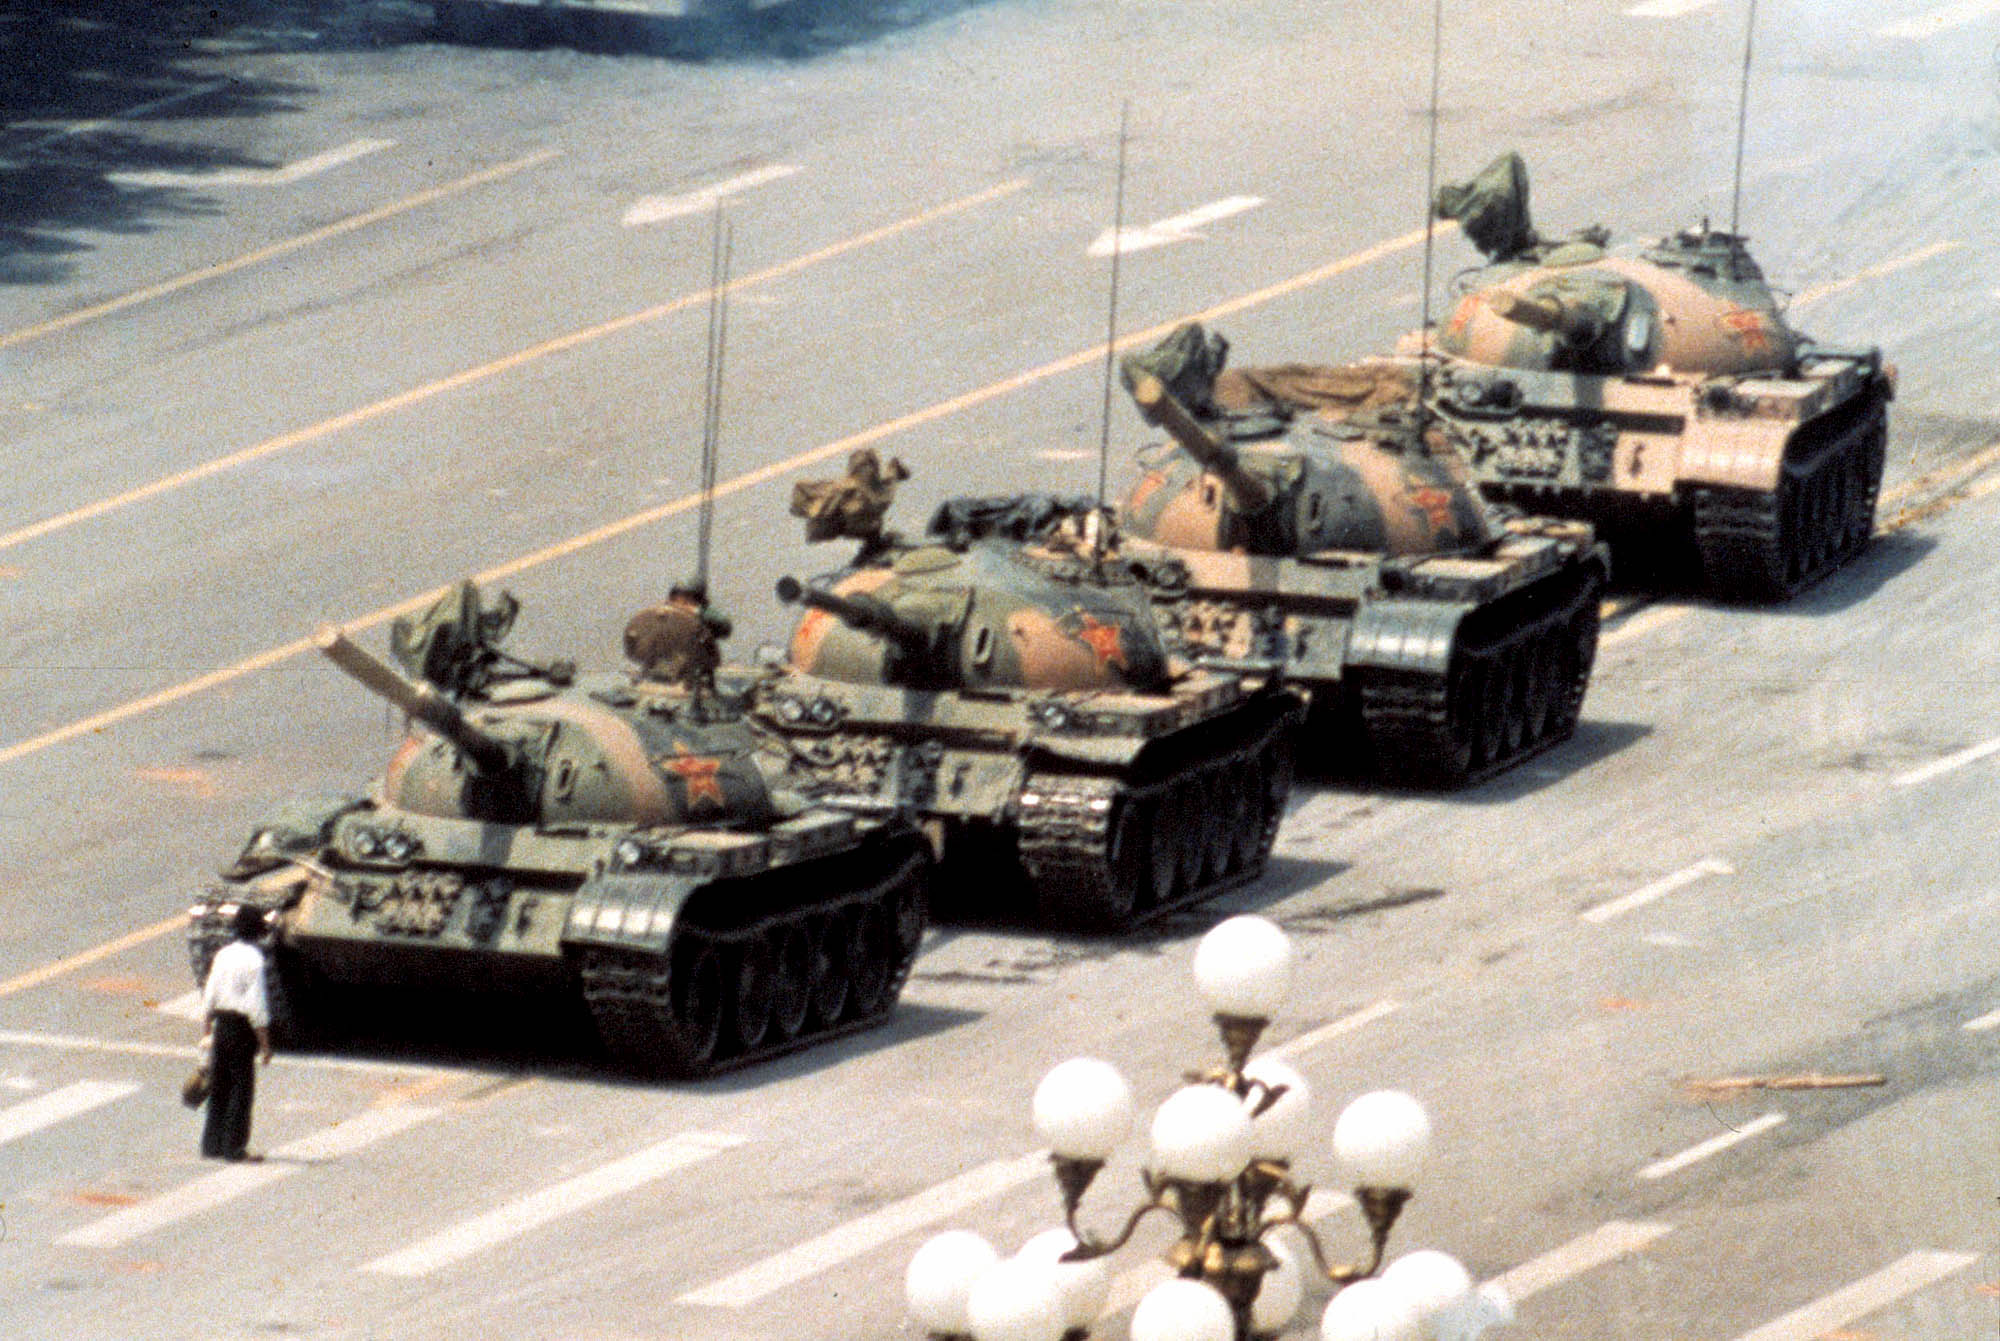 Jeff Widener, Unknown Rebel (Tank Man) - Pechino, Cina (1989) cult stories cultstories cinema cult story cultstory art culture music ipse dixit aneddoti citazioni frasi famose aforismi immagini foto personaggi cultura musica storie facts fatti celebrità vip cult tank mania tank manufacturers tank mania groupon tank man photographer tank man poster tank management as tank manufacturers military tank mandela way tank mania hacked tank mantlet tank man bodybuilder tank man duck tank man hunger games tank man youtube tank man tiananmen poster tank man cornwall tank man documentary youtube tank man frontline tank man article tank man at tiananmen tank man albany tank man art tank man and megaman tank action man septic tank man arrested iron man tank armor tank man dead or alive tank a mania what is a tank mantlet what is a tank manway jugar a tank mania tank man batman tank man book main battle tank tankmen battle 2 hacked tankmen battle 2 tank man bbc tank man background tank man biography tank man by jeff widener b&g expansion tank manual r&b artist tank manager sony b-tank manual manta b tank tank man cartoon tank man china video tank man china youtube tank man calgary tank man computers tank man censorship tank man charlie cole tank man chennai tank man canberra spy-c tank manual c'mon man tank top tank man documentary pbs tank man dataran tiananmen tank man definition tank man dubstep tank man doors tank man dress up tank man dvd d gray man manga tank tank man essay tank man egypt tank man effect mantank environmental action man tank ebay tank cleaning no man entry tiananmen square tank man essay iron man tank explosion thomas tank engine man documentary how did tank man end e-tank manual e tank spark mandrill e tank 2000 manual e p tank manual megaman e tank double e-tank manifold e tank megaman wiki e-tank solar man megaman x e tank locations e&p tank user manual tank man film tank man flash game tank man facebook tank man from china tank man full tank man flash tank man family tank man frontline summary tank man figure f acrylic tank manufacturing tank man game tank man gif tank man game newgrounds tank man game hacked tank man game download tank man google china tank man national geographic y8 tank man game iron man tank gif iron man tank games g-man tank sony g tank manual tank manh nhat trong bang bang tank man hacked tank man hero tank man hd tank man human rights tank man helmet mega tank man hacked tank man 3 hacked tank one man hulk tank man industries tank man interview tank man in the 1989 tiananmen square tank man imdb tank man in egypt tank iron man tank iron man 3 tank one man itunes tank man who is he i spy tank manual tank man jeff widener tank man jimmy fallon tank man johannesburg tank man june tank man juegos tank man jogo tank man terril jones tank man 2 játék japanese tank man john tank man tank man kimdir tank kills man tank one man karaoke tank man tango deborah kelly did tank man get killed kottke tank man tank man robert kershaw tank man lego tank man lesson plan tank man legacy tank man long man tank little hulton tank dead man lyrics tank one man listen tank 1 man lyrics frontline tank man tank man blues lyrics l&l tank manufacturing l-dk manga tank 40l tank how many fish l homme de tiananmen tank man tank man mt barker tank man megaman tank man meme tank man mtv tank man mystery tank man media man tank manchester tank mega man shark tank man medals the tank man mount gambier m-1 tank manufacturer m tank mega man 5 m.s. tank manufacturers in india a.t.m. tank manufacturing tank man newgrounds tank man nelspruit tank man new photo tank man new york times tank man news tank man nz tank man newspaper tank man news report tank man notes n-tech manure tank tiananmen tank man tank man online tank man original video tank o mania tank o man tank-o-box apk mania tank man pbs tank man pbs video tank man pictures tank man poem tank man parody tank man photograph analysis tank man painting tank man penzance tank man quotes tank man questions tank man quickmeme tiananmen square tank man quote tank man real name tank man racing scooter tank man reddit tank man revisited tank man rule 34 tank man rubber duckies tank man represent tank one man ringtone tank one man release date fish tank repairman tank man san diego tank man shirt tank man stuart franklin tank man symbol tank man simpsons tank shoots man tank man scooter shark tank man candle septic tank man s tank manila s s tank manufacturer s s storage tank manufacturers rancilio epoca s tank manual igri s tank maniq tank man tango tank man tattoo tank man t shirt tank man time tank man theme t-55 tank manual t-34 tank manual t-90 tank manufacturer t-62 tank manual t 34 tank mandela way t-72 tank manual t-shirt tank man t-34 tank manufacturer t-80 tank manufacturer t rex fuel tank manual tank man utrecht tank man un man tank urban dictionary shark tank update man candle tank man mega man unlimited man up tank top youtube tank man man u tank top soviet tank man uniform tank man video youtube tank man video tiananmen square tank man video pbs tank man vimeo tank man vector tank man vietnam tank man video newgrounds tank man video cnn tank man video clip tank man video man v tank man v tank china tank man water tanks tank manways tank man whakatane tank man - wikipedia the free encyclopedia tank man worksheet tank man wa tank man wikileaks tank wave man tank dead man walking lyrics tank dead man walking mp3 gry w tank mania gra w tank mania 3 sub tank mega man x energy tank megaman x heart tank mega man x mysterious girlfriend x manga tank tiananmen square tank man youtube tank man zombie attack hacked download tank one man zip tank one man 2002 zip the tank man new zealand tank dead man walking zippy tank man zdjecia iron man tank 002 tank man 101 tank man 1989 tiananmen square massacre tank man part 1 tank man time 100 action man tank 1980 how to tank 10 man ds how to tank 10 man stone guard tank lich king 10 man elegon 10 man tankspot 1 man tank 1 tank how many liters 1 tank how many gallons german 1 man tank japanese 1 man tank 1 24 rc tank manufacturers badger 1 man tank 1/64 manure tank tank man 2 hacked tank man 2009 tank man 2 game tank man 2012 tank man 2009 photo tank man 2013 mega tank man 2 tank one man 2002 rar 2 man tank challenger 2 tank manufacturer leopard 2 tank manufacturer leopard 2 tank manual sampletank 2 manual ford 2 man tank freelander 2 mantec tank guard mercenaries 2 mantis tank world war 2 tank manufacturers chaos faction 2 tank man think tank iron man 3 half tank man diablo 3 tankmen battle 3 tank man 300 bf3 3 man tank ford 3 man tank tank mania 3 3 foot tank how many gallons 3 foot tank how many litres tank mania 3 game 3 gallon tank how many fish tank mania 3 hacked tank man 3 tankman 49cc scooter tank for man 4 tank man and dog tank mania 4 4 foot tank how many litres 4 foot tank how many gallons 4 gallon tank how many fish 4 feet tank how many gallons tank mania 4 hacked halo 4 tank vs mantis tank mania 4 games june 4 1989 tank man best 10 man tank 5.4 best 5 man tank 5.4 5 man tank crew 5 pound co2 tank many kegs best 5 man tank mop best 5 man tank 5 gallon manx tank 5 foot fish tank manchester rift 5 man tank spec 5 gallon fish tank many fish 5 lb propane tank manchester that fish tank man 63 6 gallon tank how many fish 6 foot tank how many gallons 6 million dollar man tank 7 gallon tank how many fish 7 for all mankind tank top celestron power tank 7 manual 7 for all mankind tank tank man 89 man 8.180 tank man 8.150 tank 8 gallon tank how many fish mystery tank mega man 9 tank guide icc 10 man 10 gallon tank many fish msv 10 man tank guide tot 10 man tank guide ds 10 man tank guide icc 10 man tank guide garrosh 10 man tank guide soo 10 man tank guide elegon 10 man tank guide horridon 10 man tank guide tiananmen square tiananmen square tank tiananmen square beijing tiananmen square facts tiananmen incident tiananmen square tank video tiananmen square what happened tiananmen square photo tiananmen square youtube tiananmen poem tiananmen square massacre tiananmen square poem what is a tiananmen square tiananmen a deafening violence a plaza de tiananmen a praça de tiananmen tiananmen best year courtyard hotel tiananmen building tiananmen band tiananmen by james fenton tiananmen building se14 tiananmen bar tiananmen beijing tiananmen bar menu tiananmen bar makati ave tiananmen bear b. tiananmen square tiananmen crisis tiananmen censorship tiananmen city tiananmen casualties tiananmen chai ling tiananmen canada tiananmen club singapore tiananmen crash tiananmen car crash tiananmen car tiananmen definition tiananmen documentary tiananmen demonstrations tiananmen diary thirteen days in june tiananmen duck tiananmen demonstration in 1976 tiananmen diary tiananmen download tiananmen di china define tiananmen square massacre tenacious d tiananmen square tienanmen d'argences tiananmen exiles tiananmen event tiananmen explosion tiananmen east station tiananmen egypt tiananmen essay tiananmen entrance fee tiananmen español tiananmen era tiananmen east subway tiananmen fenton tiananmen flag raising tiananmen forgotten tiananmen film tiananmen facts tiananmen forbidden city tiananmen fire tiananmen fictions outside the square tiananmen footage tiananmen falun gong tiananmen gate tiananmen goddess of democracy tianmen glass walkway tiananmen guatemala tiananmen gate tower tiananmen guangchang tiananmen glass walkway tiananmen guy tiananmen google tiananmen generation tiananmen hall tiananmen history tiananmen highway china tiananmen how to pronounce tiananmen hardliner regrets massacre tiananmen hong kong tiananmen hutong inn courtyard hotel tiananmen hatyakand tiananmen hotel beijing tiananmen heaven's gate tiananmen island tiananmen incident 1989 tiananmen incident summary tiananmen ink tiananmen in chinese tiananmen interlude tiananmen in beijing tiananmen initiative project tiananmen incident 2013 i love tiananmen i love beijing tiananmen i love beijing tiananmen song i love beijing tiananmen square i love beijing tiananmen hong kong 97 i love beijing tiananmen tiananmen james fenton tiananmen june 4 tiananmen jeep tiananmen jeep fire tiananmen jinshui bridge tiananmen japan tiananmen square jeff widener tiananmen square june 5 tiananmen square james fenton tiananmen square jeep accident tiananmen ktv tiananmen ktv & lounge tiananmen ktv closed tiananmen ktv & lounge pte ltd tiananmen ktv price tiananmen killings tiananmen karaoke singapore tiananmen ktv address tiananmen ktv sg tiananmen karaoke tiananmen lyrics tiananmen lego tiananmen location tiananmen liveleak tiananmen led screen lego tiananmen square lapangan tiananmen cina liusi tiananmen lapangan tiananmen 1989 lyrics tiananmen square l'homme tiananmen l'inconnu de tiananmen l'homme place tiananmen l'homme de tiananmen hda l'homme de tiananmen wikipedia l'homme de tiananmen photo l homme de tiananmen tank man l'homme de tiananmen vidéo tiananmen massacre tiananmen mothers tianmen mountain tianmen mountain glass path tianmen mountain cable car tianmen mountain cycling tianmen mountain skywalk tianmen mountain walkway tianmen mountain road cycling tiananmen meaning capital m tiananmen square tiananmen negatives tiananmen nightclub singapore tiananmen nuts tiananmen nightclub tiananmen news tiananmen national park tiananmen national park skywalk tiananmen new york times tiananmen nevermore tiananmen noodler's tiananmen olayları tiananmen opening hours occupy tiananmen square tiananmen incident of 1989 tiananmen gate of heavenly peace tiananmen square outcome tiananmen square of mexico tiananmen square october 2013 korwin o tiananmen o massacre de tiananmen o que é tiananmen square o homem de tiananmen o que é tiananmen o que significa tiananmen tiananmen papers tiananmen pronunciation tiananmen protest tiananmen pekin tiananmen protest 1989 tiananmen papers pdf tiananmen platz tiananmen protest 1976 tiananmen photo tiananmen revolution tiananmen rostrum tiananmen rose tiananmen restaurant makati tiananmen restaurant tiananmen rubber duck tiananmen revolt tiananmen restaurant allen tx tiananmen rostrum wiki tiananmen rebel tiananmen square massacre death toll tiananmen s u.s. tiananmen sanctions tiananmen tank tiananmen tremendous achievements tiananmen tower tiananmen tragedy tiananmen timeline tiananmen tank video tiananmen translation tiananmen trg tiananmen terrorist attack tiananmen t shirt tiananmen uprising tiananmen uprising in beijing in 1989 tiananmen uyghur tiananmen uighur tiananmen uprising definition uss tiananmen us tiananmen square uncropped tiananmen square uncropped tiananmen square photo ukraine tiananmen tiananmen video tiananmen view hotel tiananmen vigil tiananmen victims tiananmen vigil hong kong tiananmen vase tiananmen vigil victoria park tiananmen vendetta tiananmen video tank tiananmen vigil hong kong 2012 tiananmen wiki tiananmen wikipedia tiananmen wikileaks tiananmen war tiananmen wikipedia indonesia tiananmen wroclaw tiananmen west tiananmen wok in allen tx tiananmen wiki fr tiananmen wingsuit plac tiananmen w pekinie placu tiananmen w 1989 roku plac tiananmen w chinach tiananmen w chinach tiananmen w 1989 tiananmen w pekinie góra tianmen w chinach tiananmen xinjiang tiananmen xi xinhua tiananmen xinjiang tiananmen square tiananmen deng xiaoping liu xiaobo tiananmen square chen xitong tiananmen liu xiaobo tiananmen tiananmen youtube tiananmen yier guesthouse tiananmen yellow duck youtube tiananmen square tank man youtube tiananmen square massacre youtube tiananmen massacre youtube tiananmen square tank tiananmen square yahoo answers tiananmen square year plaza tiananmen y ciudad prohibida tiananmen zwischenfall tianmen zhangjiajie china tiananmen zwischenfall 1976 tiananmen-zwischenfall 1989 zhao tiananmen square tiananmen square zoomed out zhao ziyang tiananmen square speech fang zheng tiananmen ding zilin tiananmen mothers jiang zemin tiananmen square june 04 tiananmen tiananmen 1989 tiananmen 1976 tiananmen 1989 photos tiananmen 1919 tiananmen 1989 tank tiananmen 10.28 tiananmen 1949 tiananmen 1989 summary tiananmen 1999 tiananmen 1989 documentary 1. tiananmen square tiananmen 1 tiananmen 2013 tiananmen 25 years tiananmen 2012 tiananmen 25 tiananmen 21 most wanted tiananmen 2.0 tiananmen 25th 2013 tiananmen square attack 2001 tiananmen square self immolation tiananmen square 2013 2 tiananmen square tiananmen 3d puzzle tiananmen square 3d model tiananmen square 360 view tiananmen square june 3 1989 june 3 tiananmen tragedi tiananmen 3-4 juni 1989 tiananmen 3sat 3 facts about tiananmen square tiananmen 3 tiananmen 4 june 1989 tiananmen 4 juin 1989 tiananmen 4 de junio de 1989 peristiwa tiananmen 4 juni 1989 tiananmen square may 4 1919 tiananmen square may 4 tiananmen square may 4th movement 4.6.1989 tiananmen piazza tienanmen 4 giugno 1989 wikileaks june 4 tiananmen 4 juin tiananmen 4 giugno 1989 tiananmen 4. juni 1989 tiananmen 4 de junio tiananmen 4 czerwca 1989 tiananmen tiananmen 535 5. tiananmen square in china is the site of tiananmen square 5 june 1989 tiananmen square 5 dead tiananmen incident april 5 1976 type 59 tiananmen april 5 tiananmen incident tiananmen square june 5th place tiananmen 5 juin 1989 june 5 tiananmen square 5 facts about tiananmen square 5 june 1989 tiananmen square 5 giugno 1989 tiananmen 5 juin 1989 tiananmen tiananmen 64 6.4 tiananmen video tiananmen square 60 minutes beijing 64 tiananmen wikileaks 64 tiananmen tiananmen 6 4 tiananmen 76 7 demands tiananmen square 7 days inn tiananmen tiananmen 89 tiananmen 89 records 89 tiananmen video 8964 tiananmen tiananmen square incident 89 tiananmen massaker 89 989 tiananmen square 10 28 tiananmen 10 facts about tiananmen square